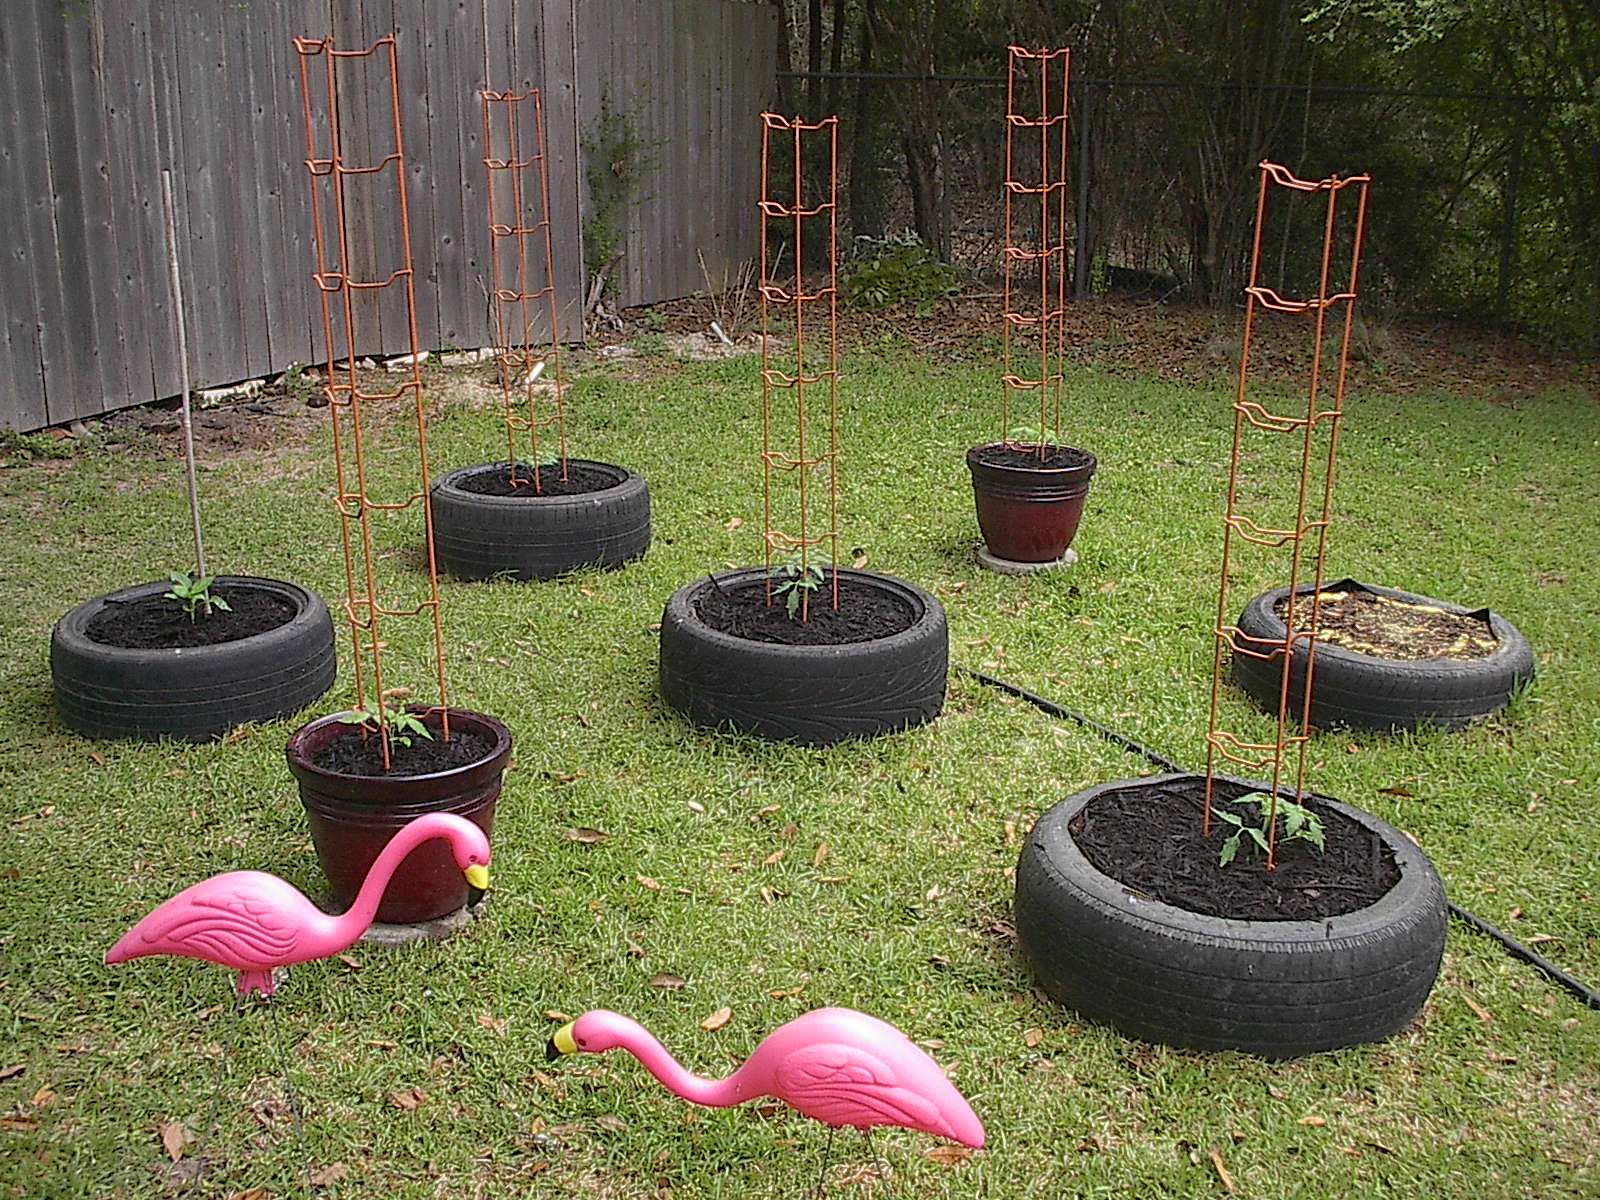 How To Diy Old Tire Garden Ideas Recycled Backyard Tire Garden Diy Garden Diy Garden Decor